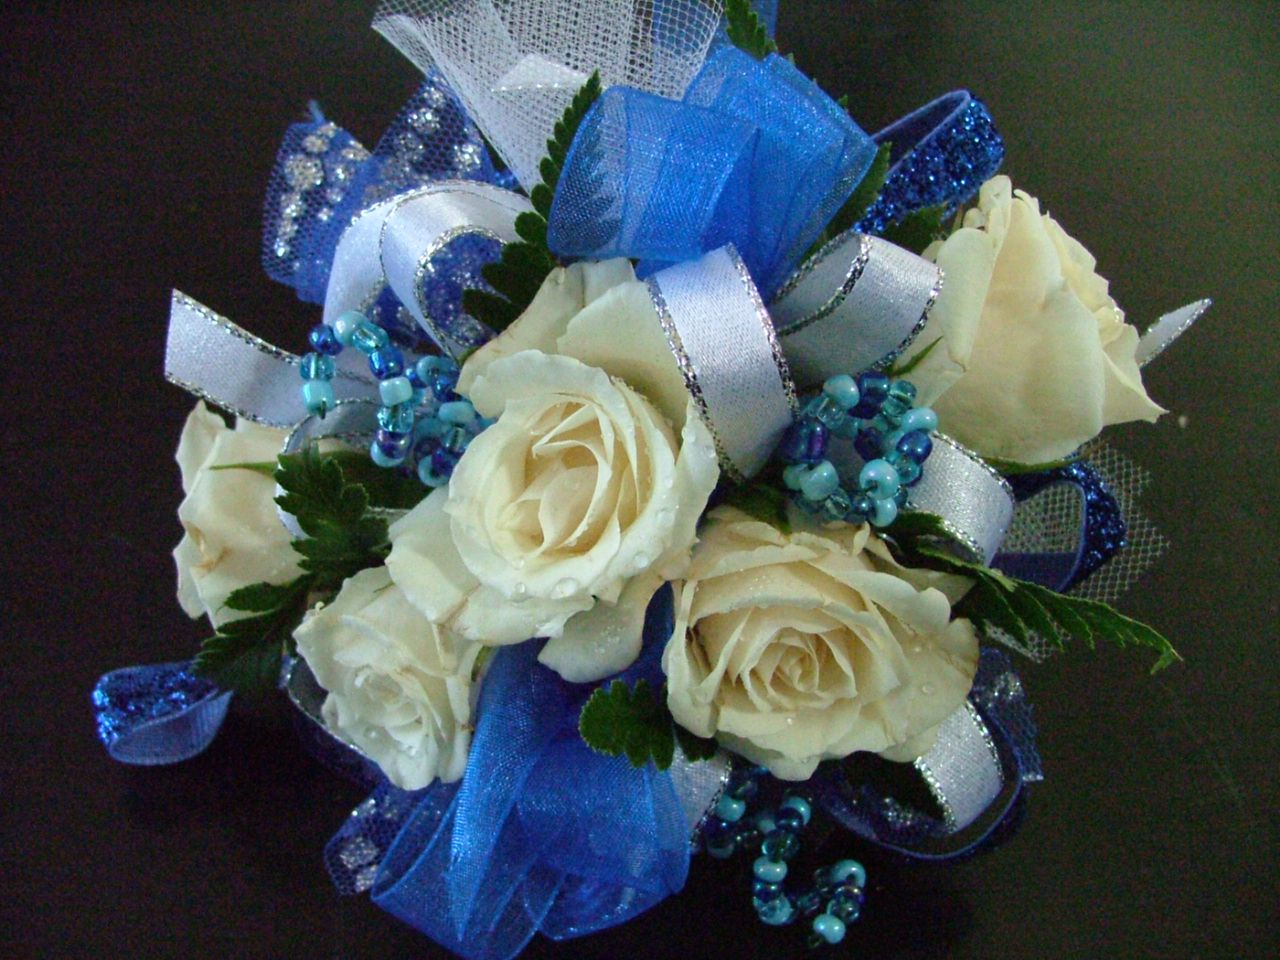 Prom corsages for 2013 royal blue accents prom flowers corsages prom corsages for 2013 royal blue accents izmirmasajfo Gallery